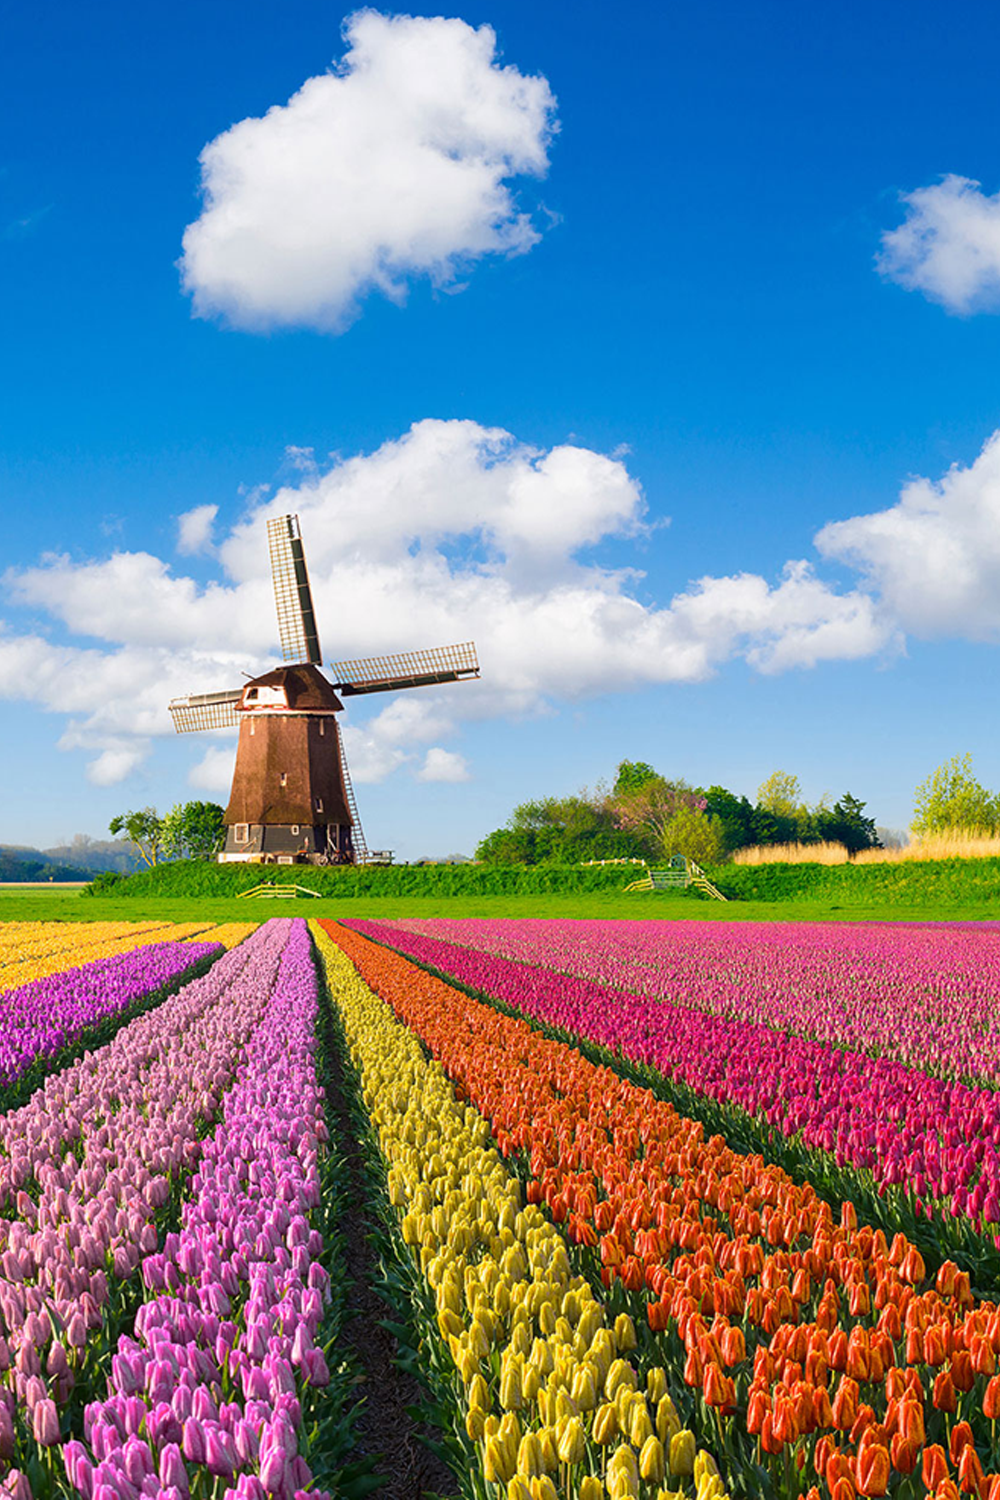 Tulip field and windmill in the Netherlands